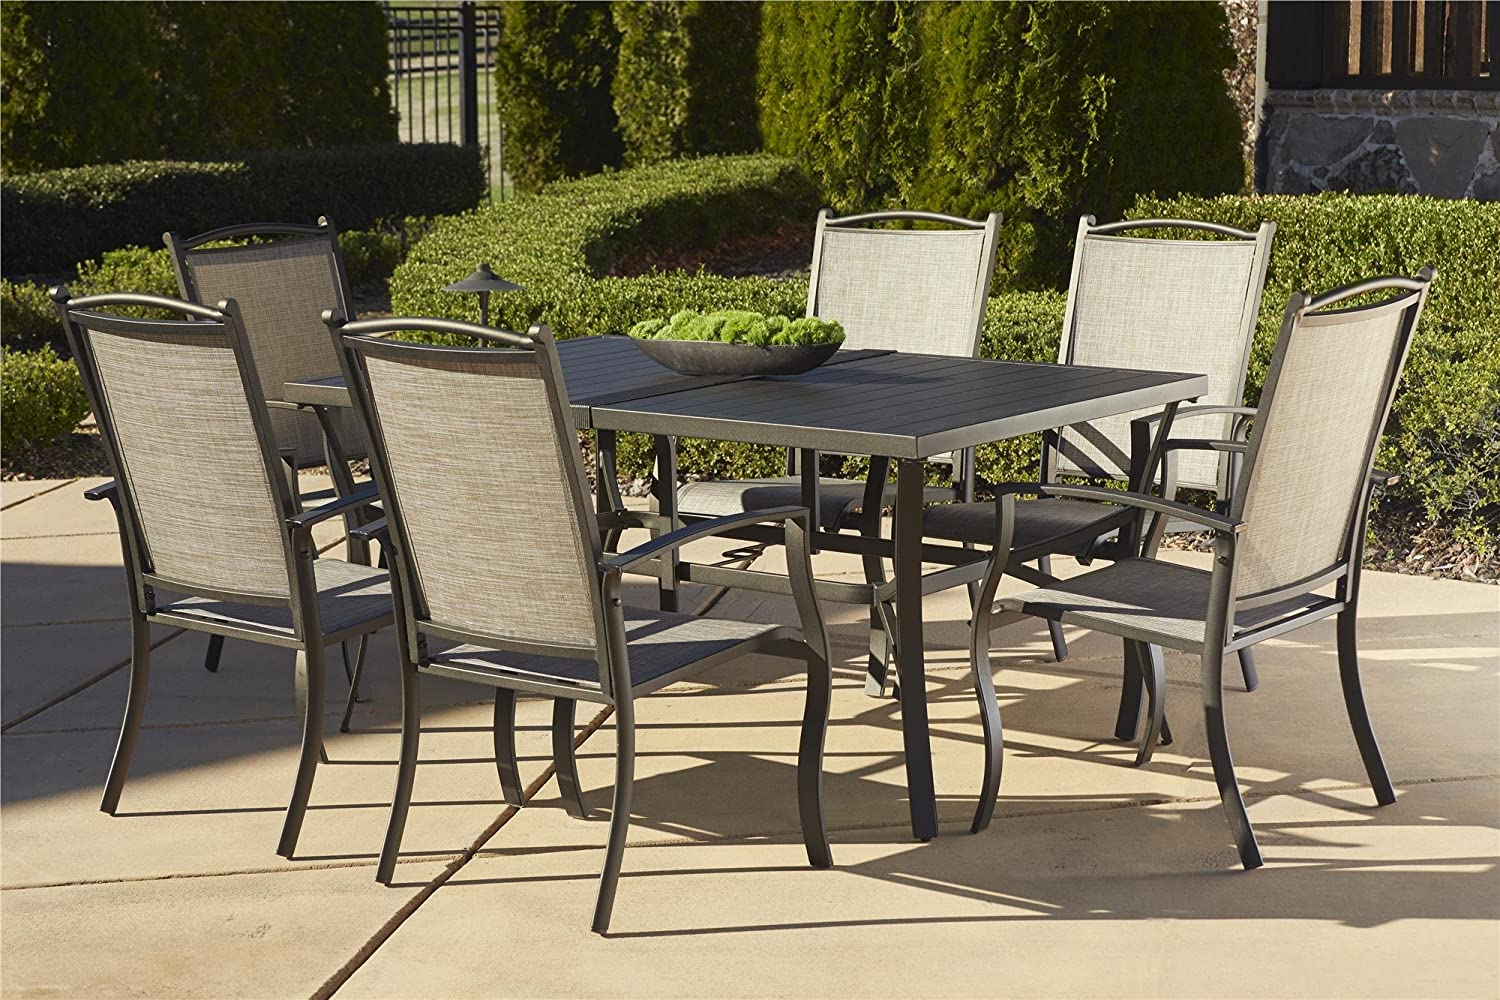 person aerin set luxury collection wicker weather furniture patio dining all